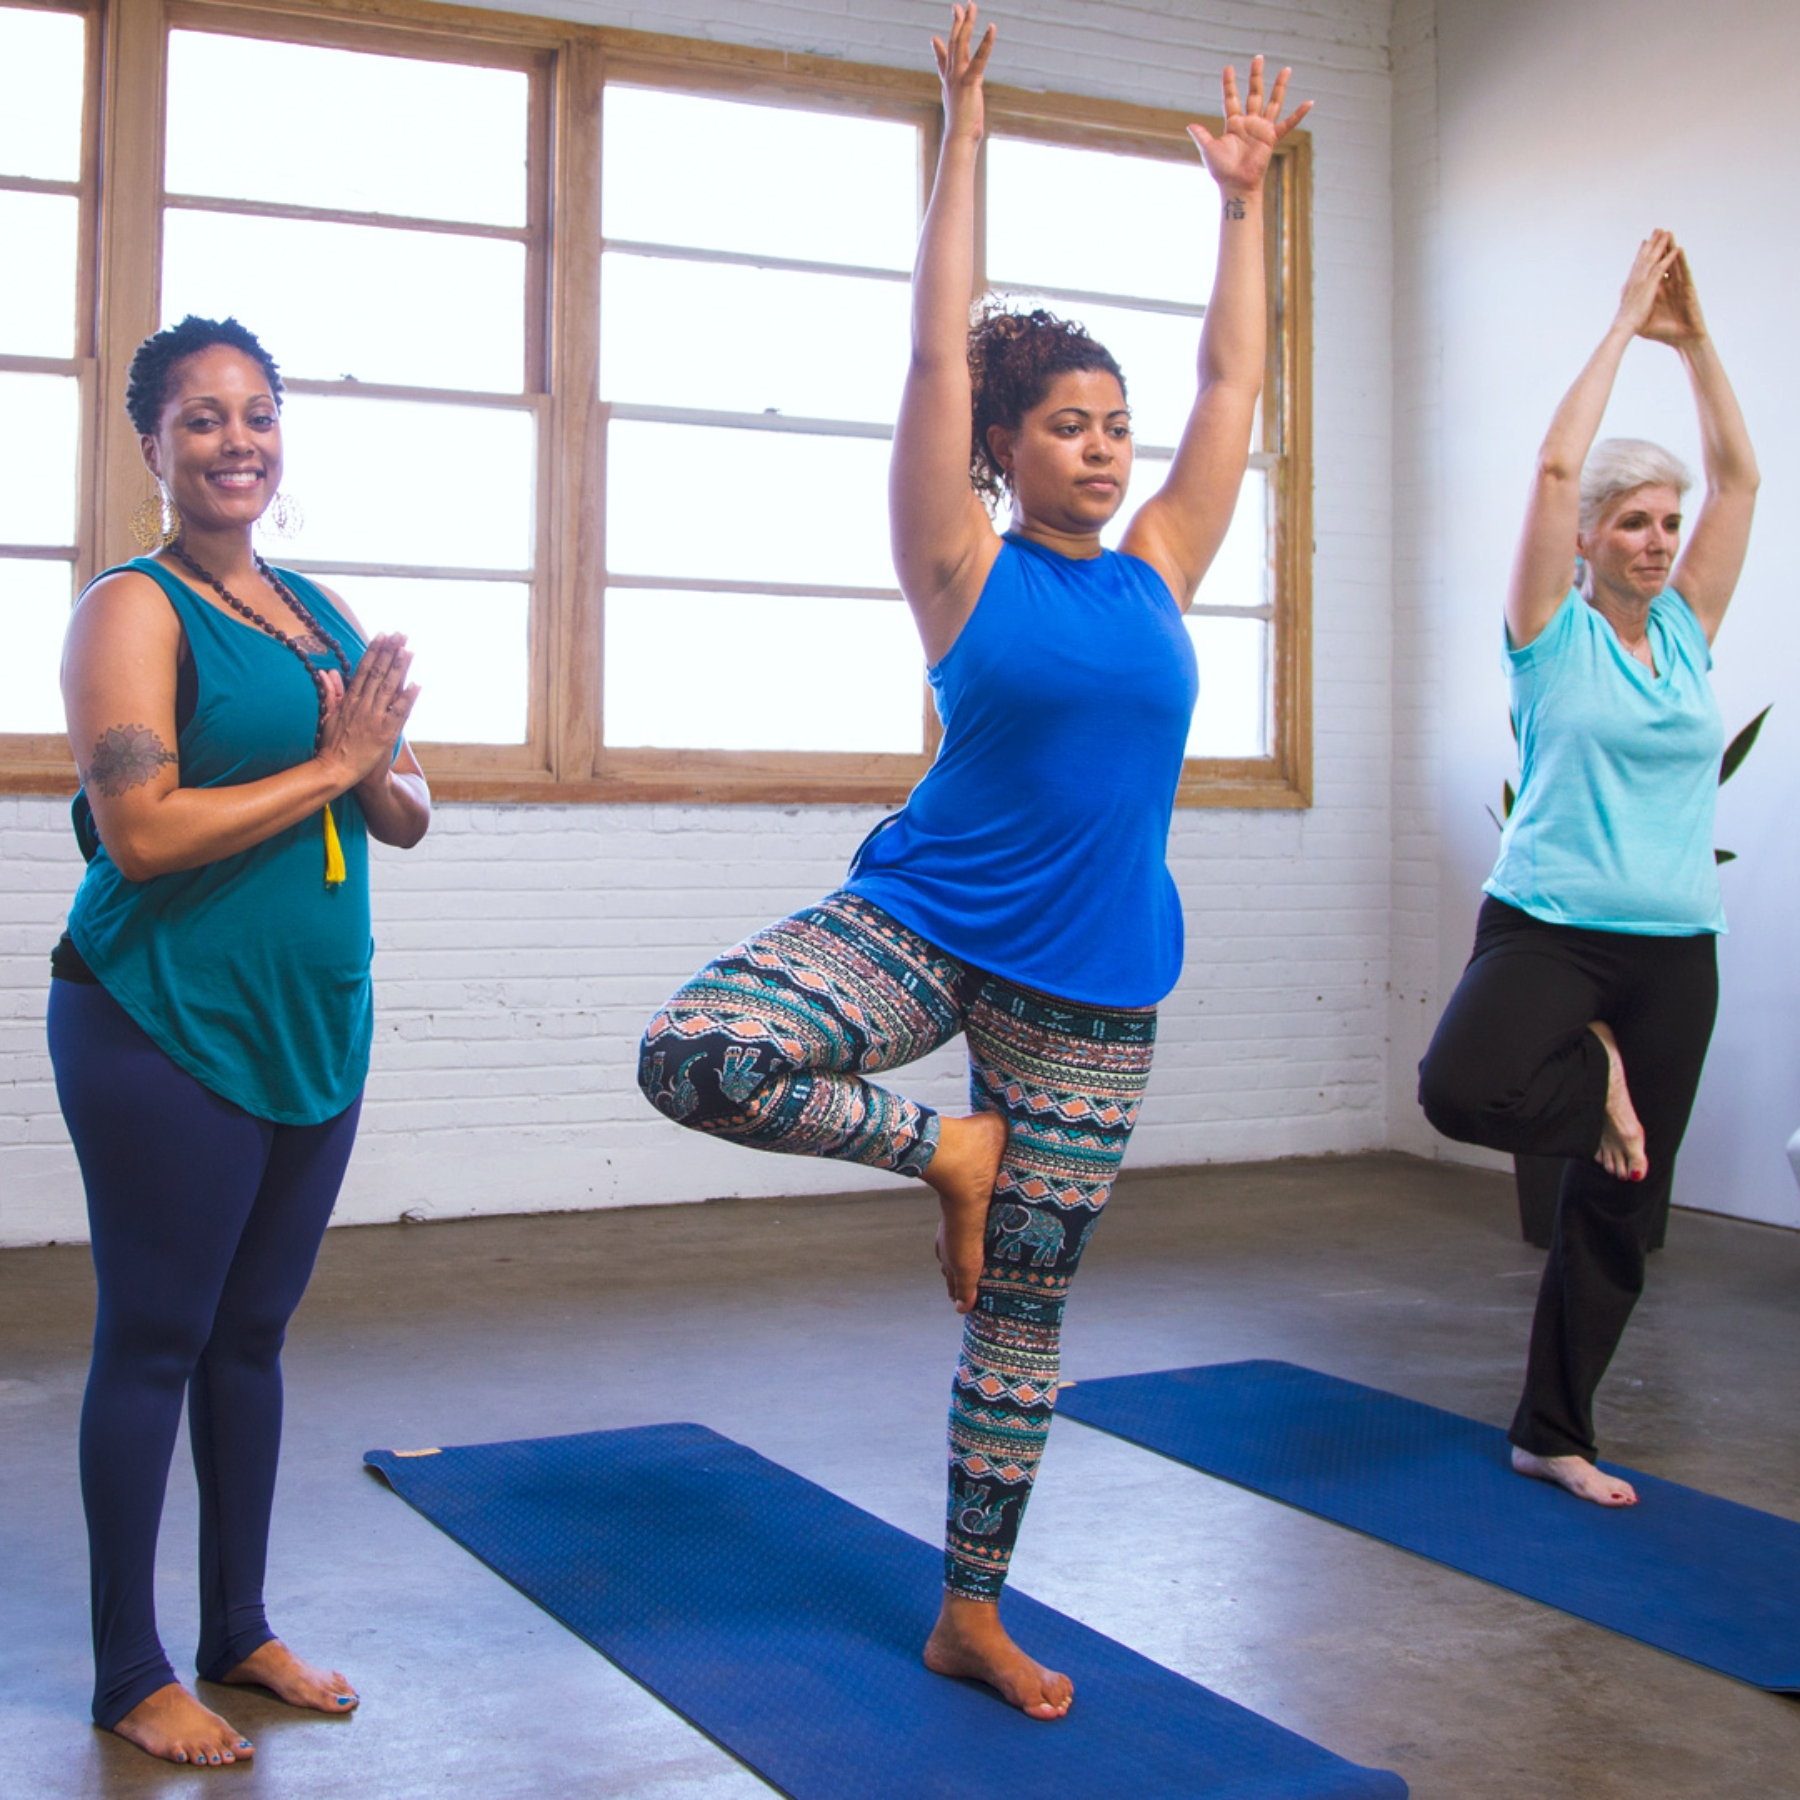 5 Ways to Practice Body Positivity on the Yoga Mat